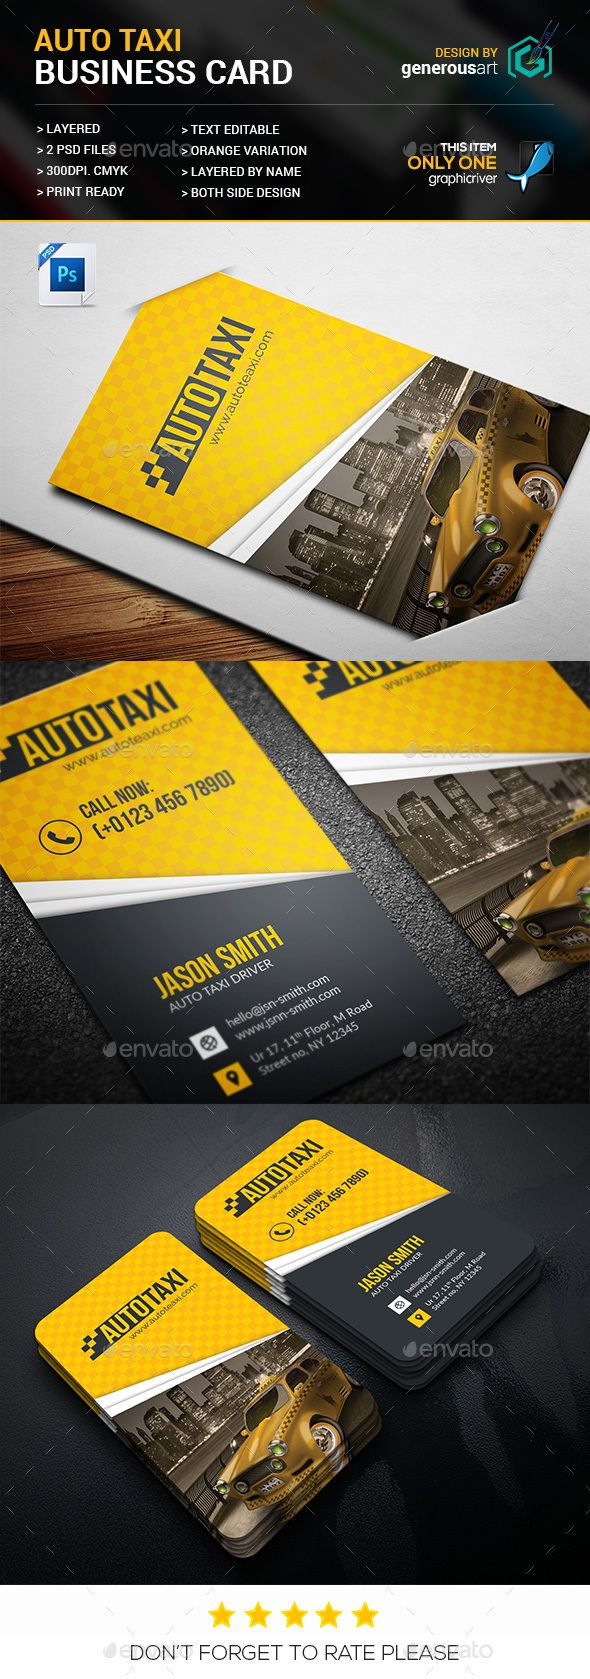 Auto Taxi Business Card - Business Cards Print Templates Download here : https://graphicriver.net/item/auto-taxi-business-card/17515265?s_rank=89&ref=Al-fatih